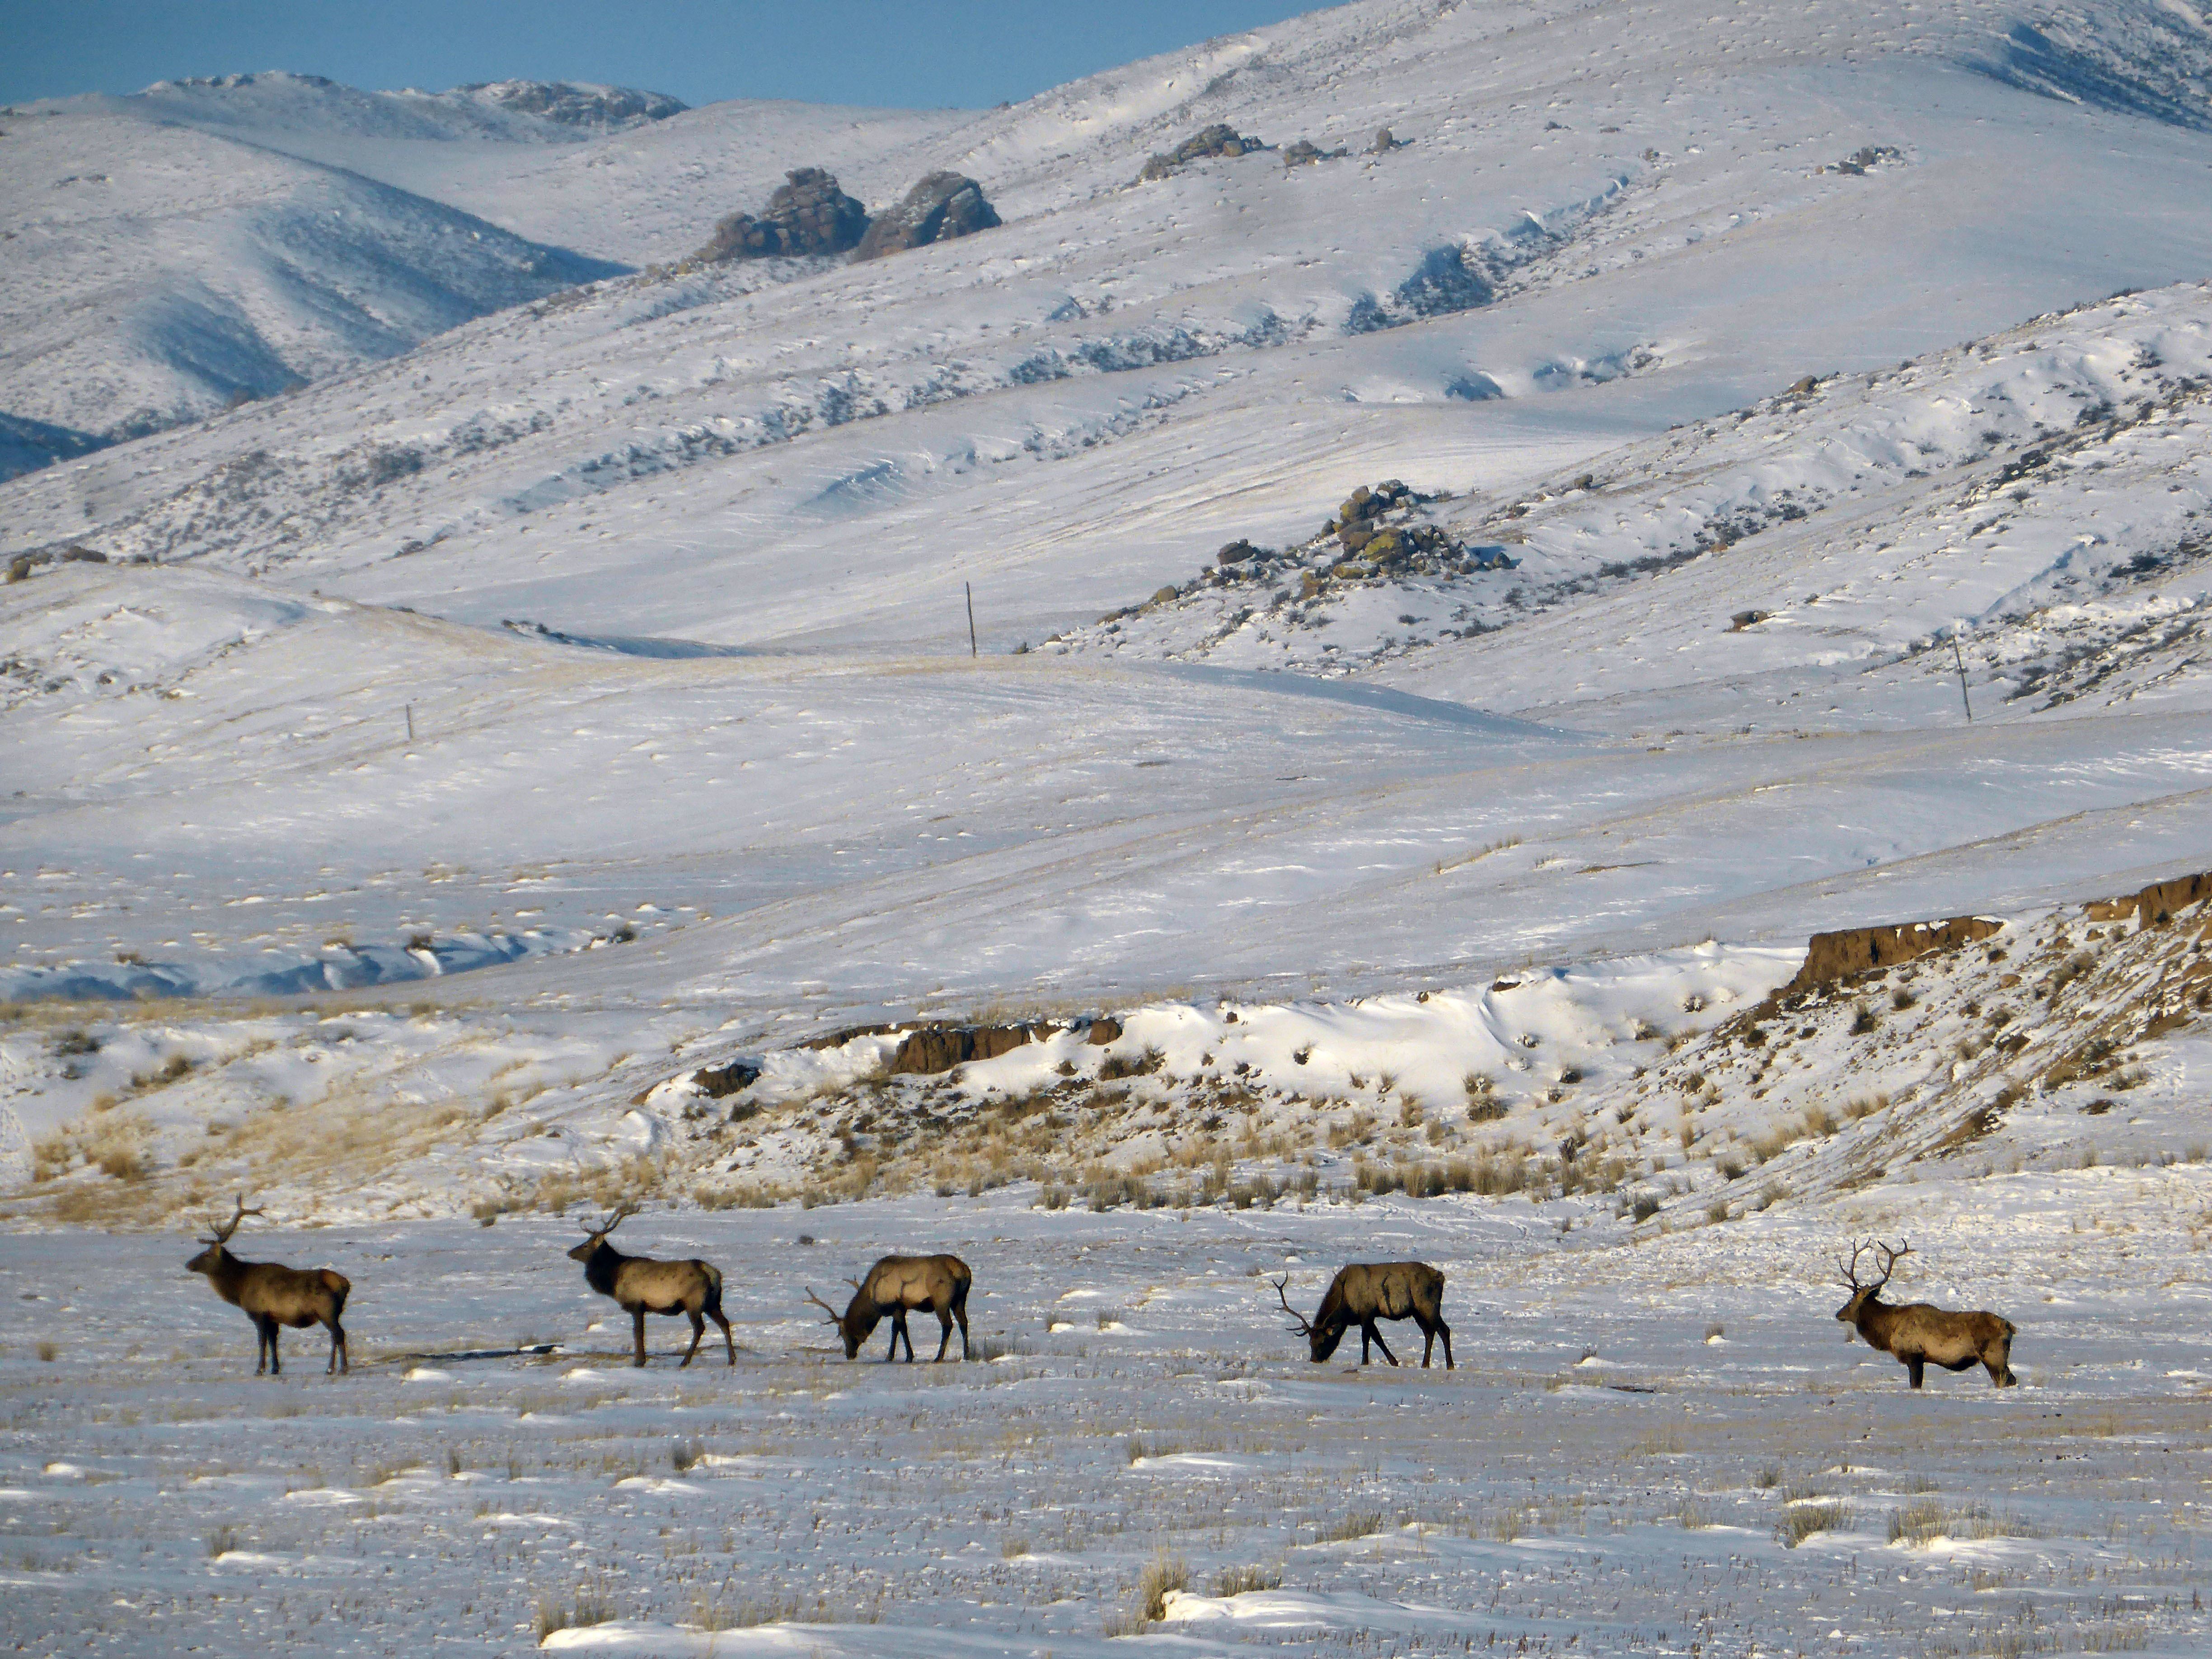 Khustai National Park: Snow mountains with free reindeer